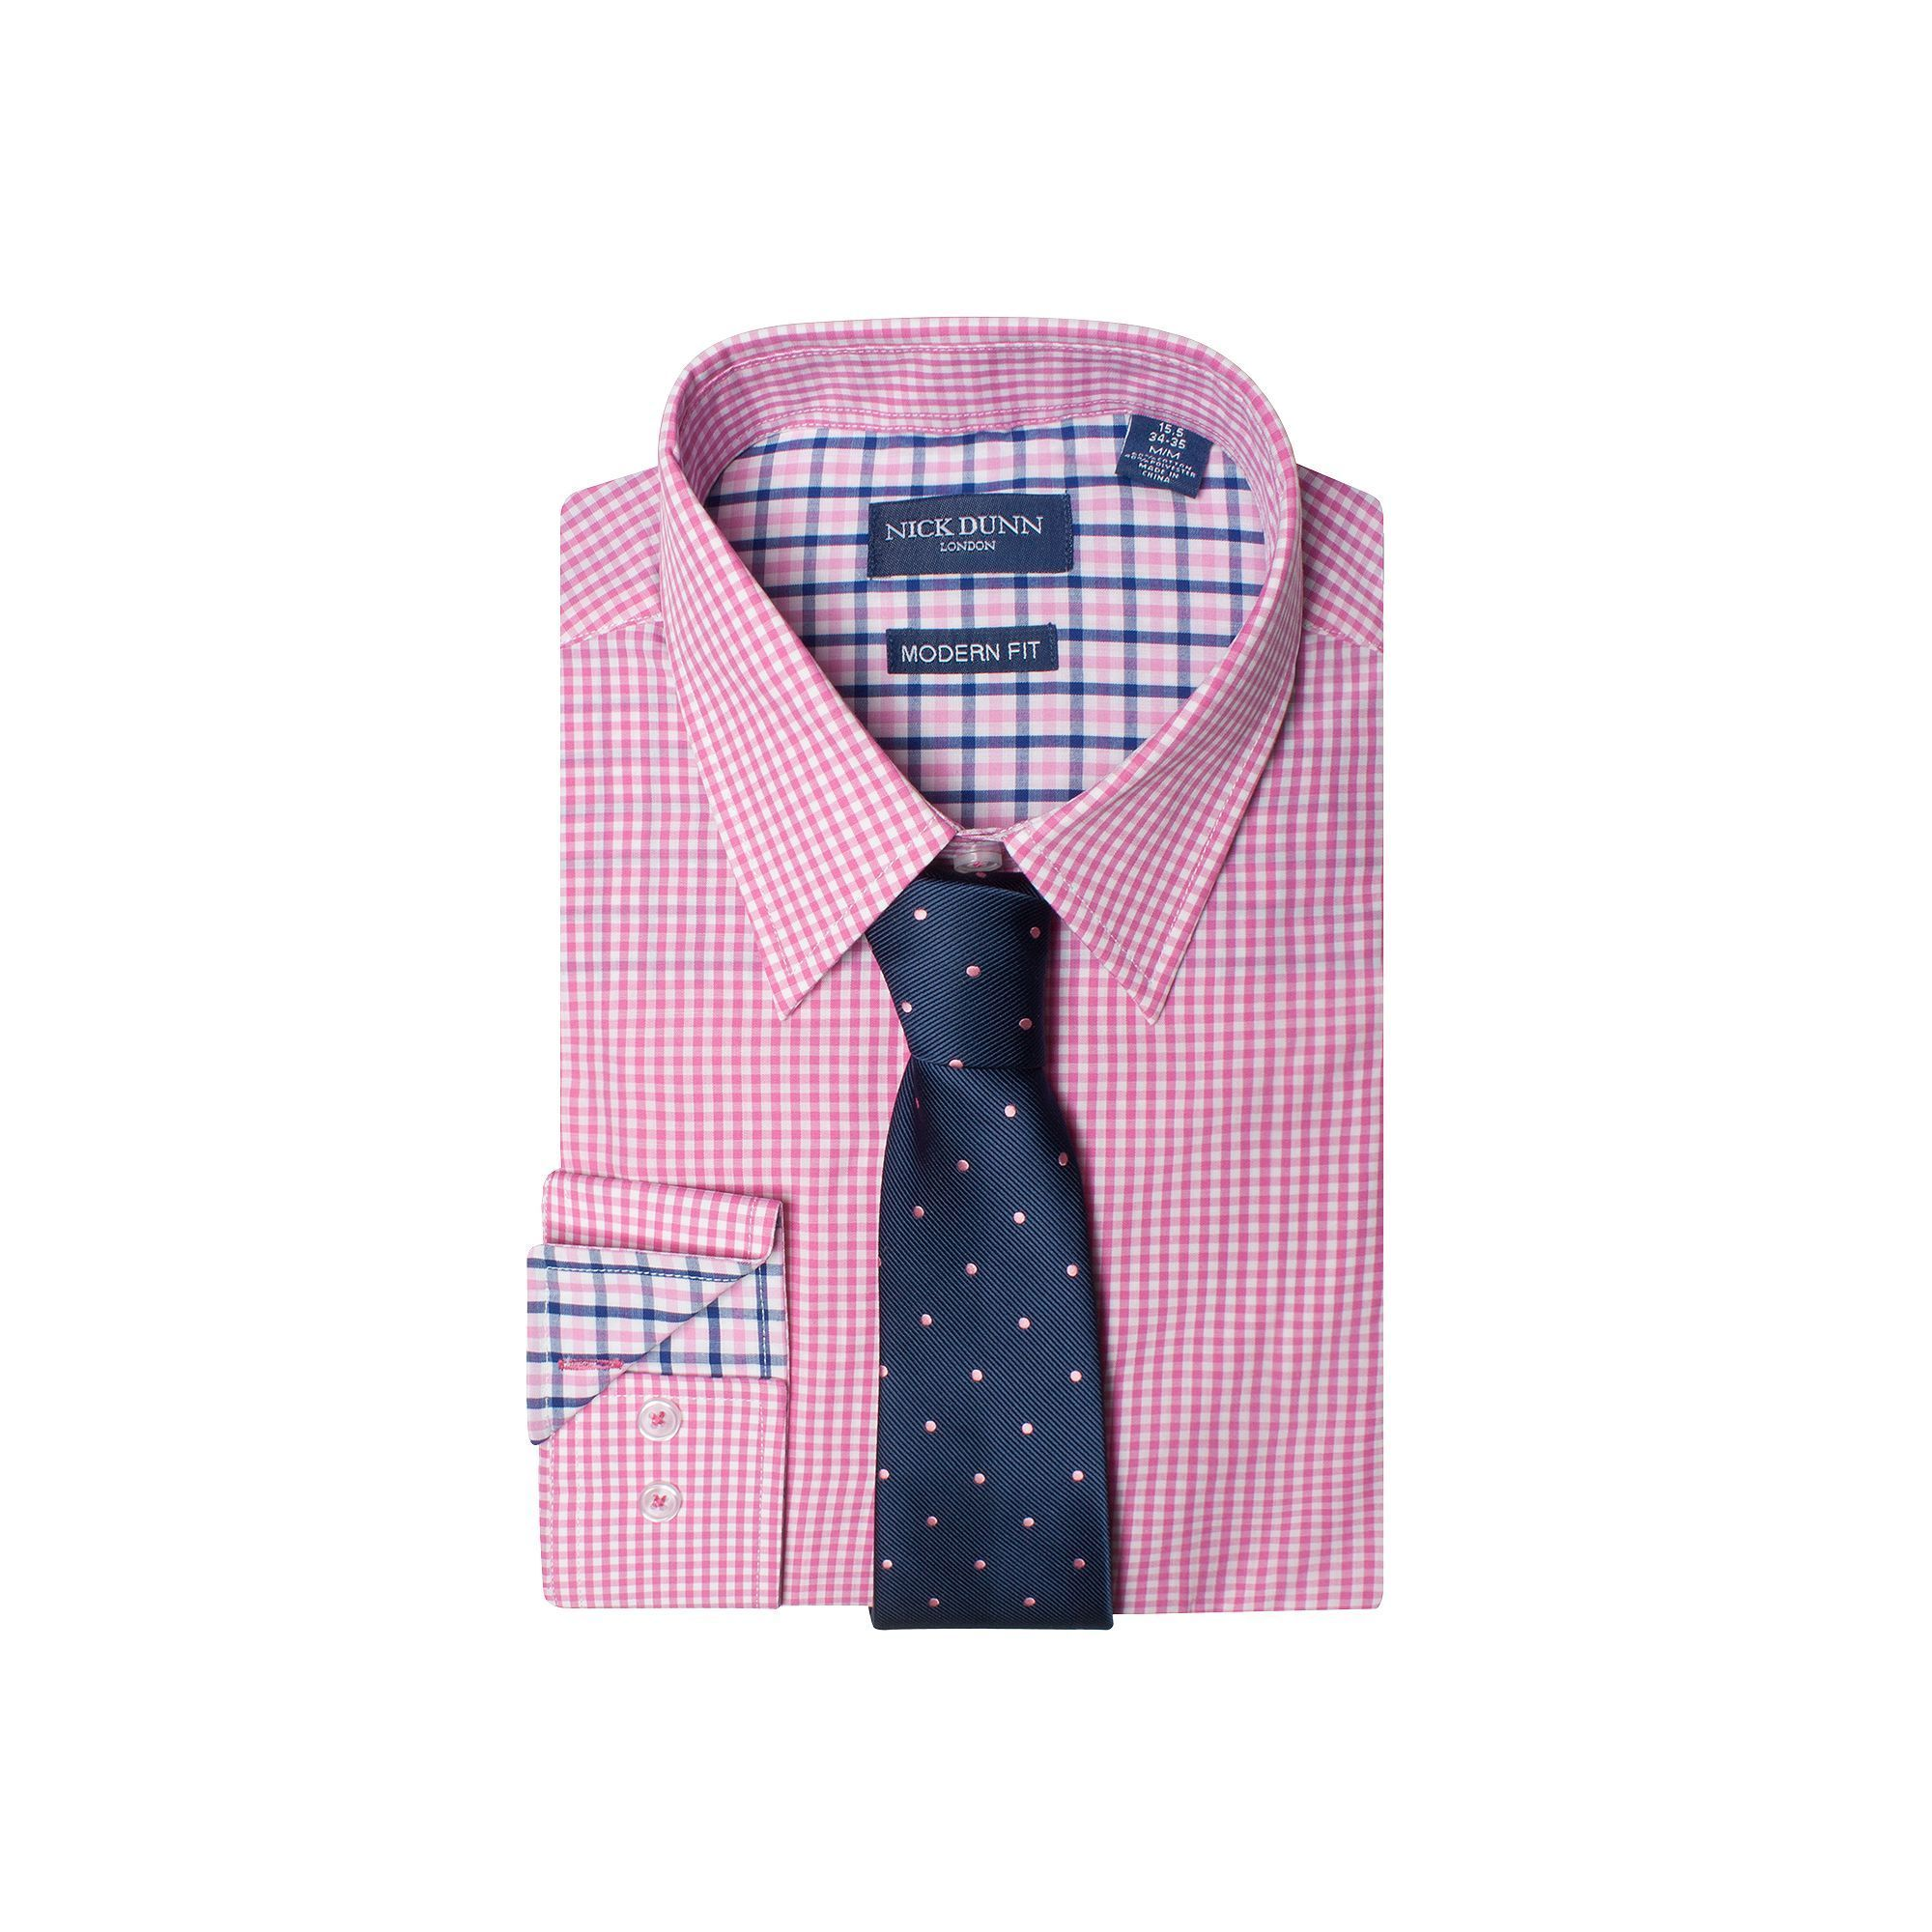 Patterned Dress Shirts Cool Decorating Ideas